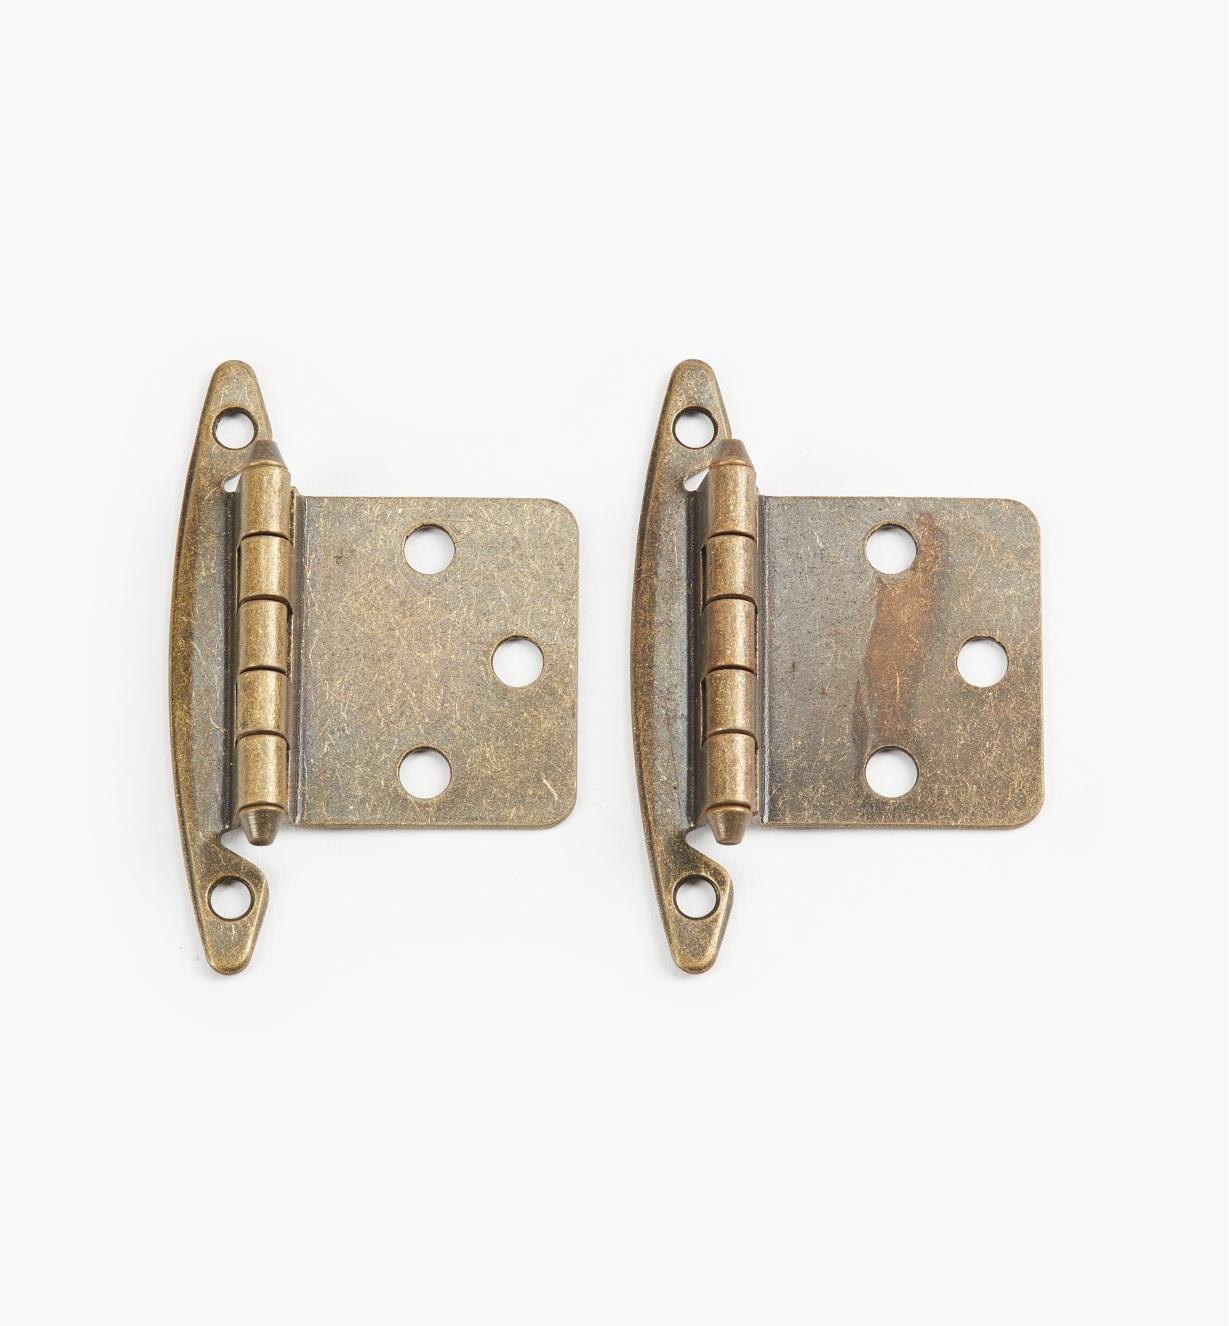 03W1218 - Belwith Standard Antique Brass Flush Hinges, 6 pairs